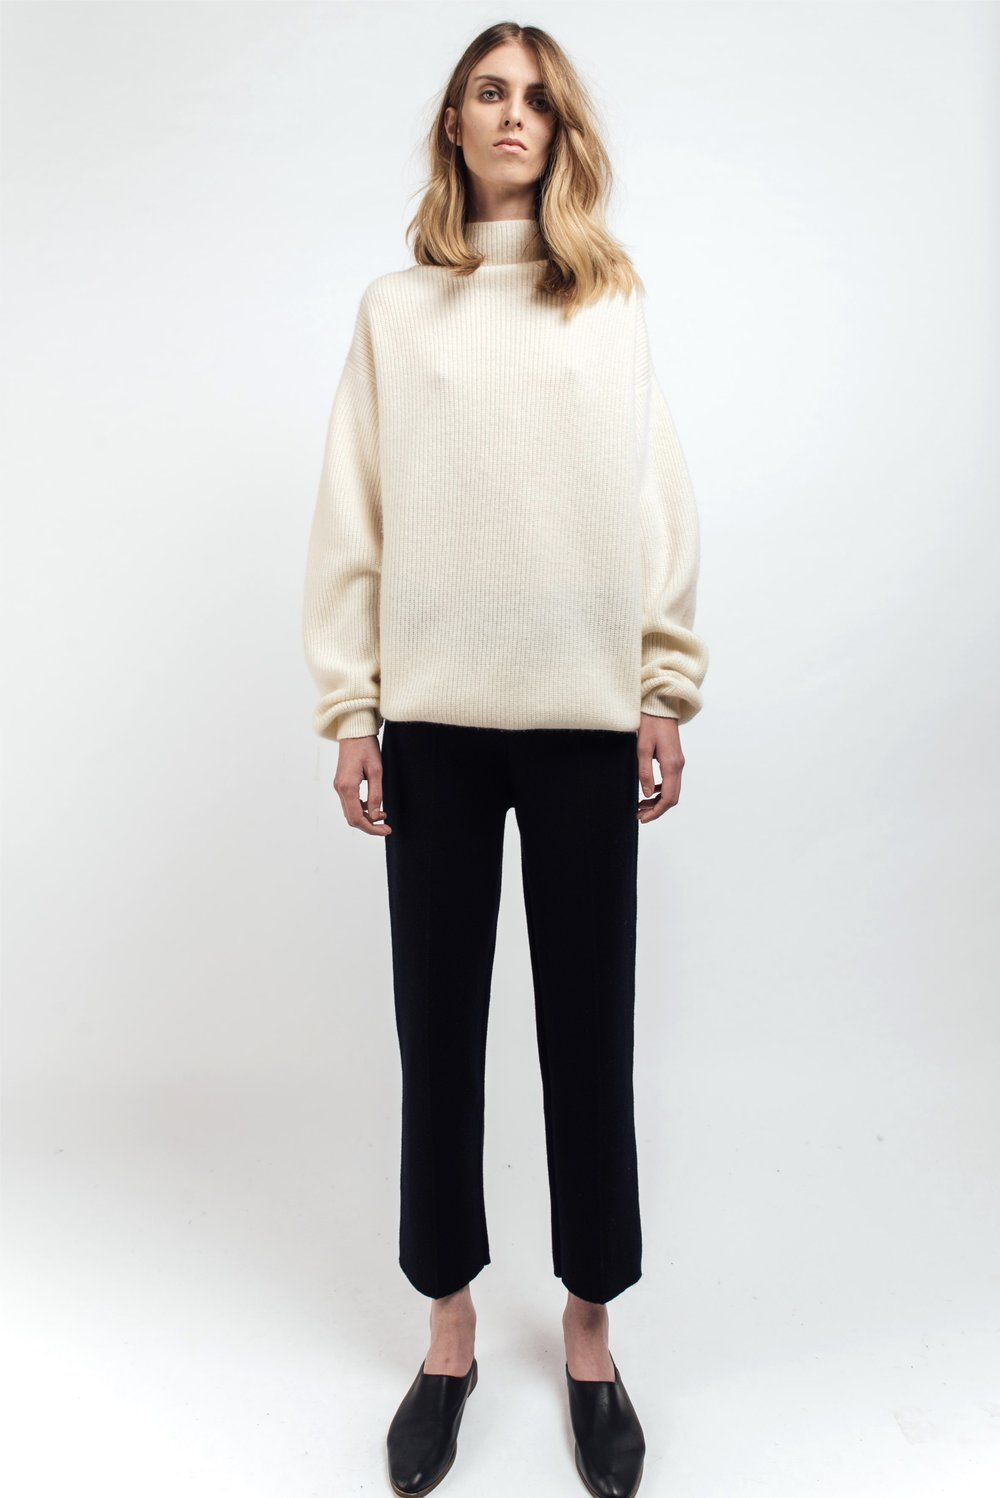 724e967a6fb Mandkhai Oversized Ribbed Jumper with high neck 100% Mongolian Cashmere One  Size Colours on garment  White